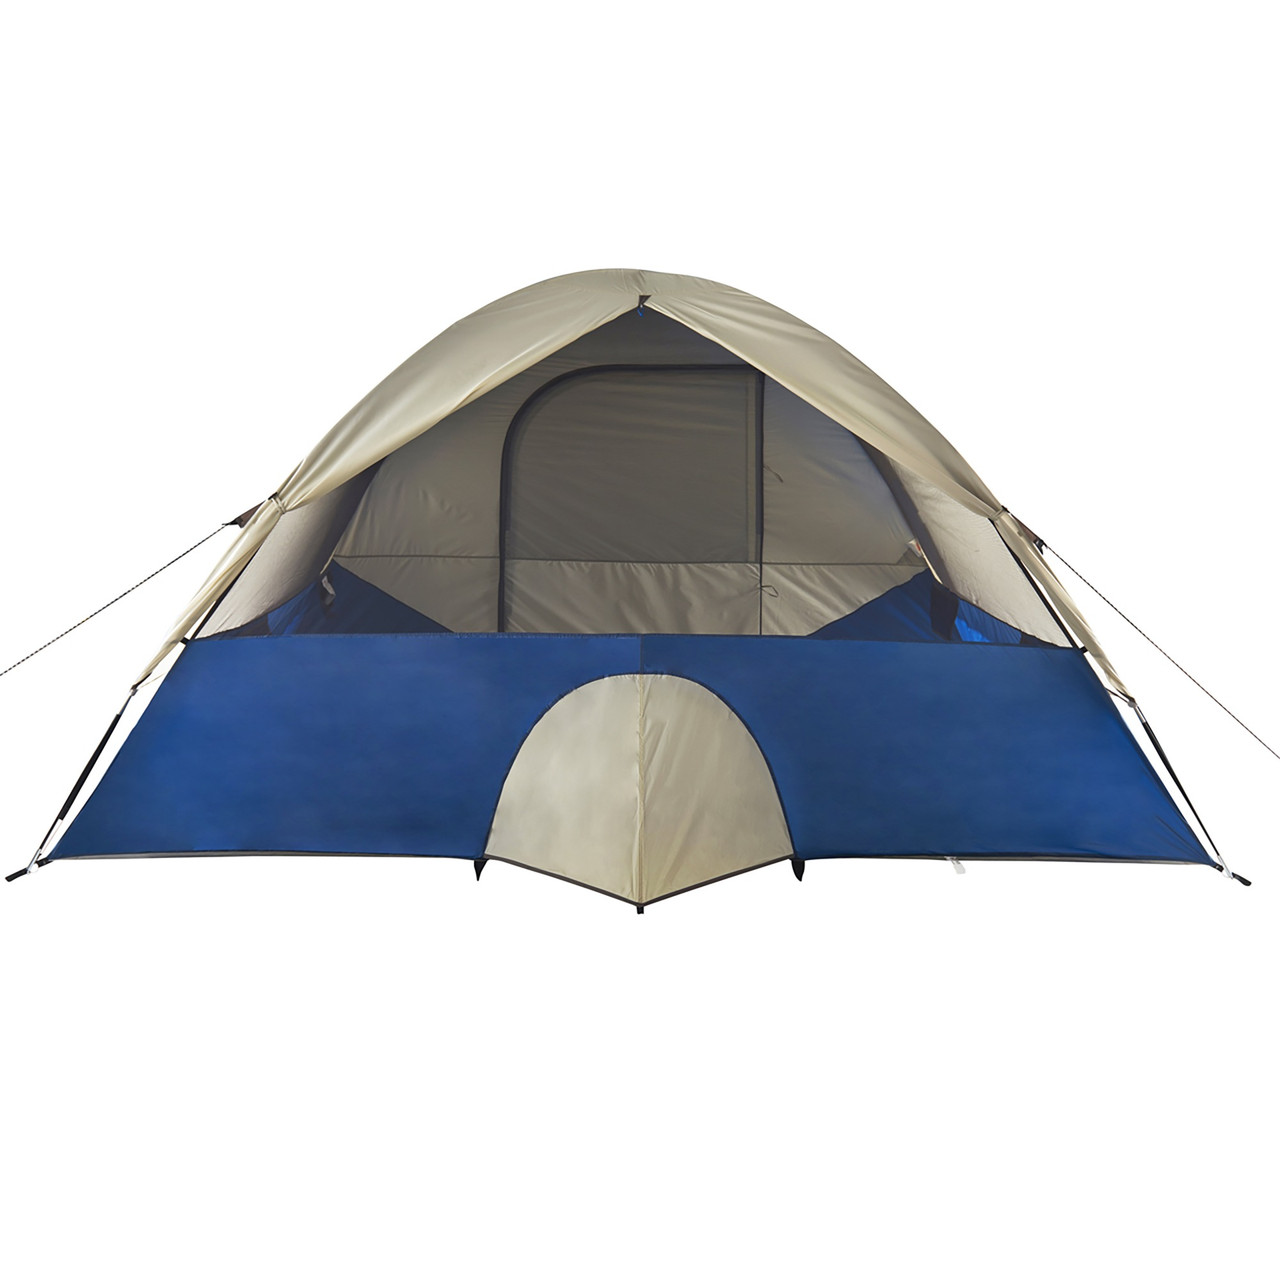 Wenzel Tamarack 6 Person Dome Tent, blue/white, rear view, with window opened